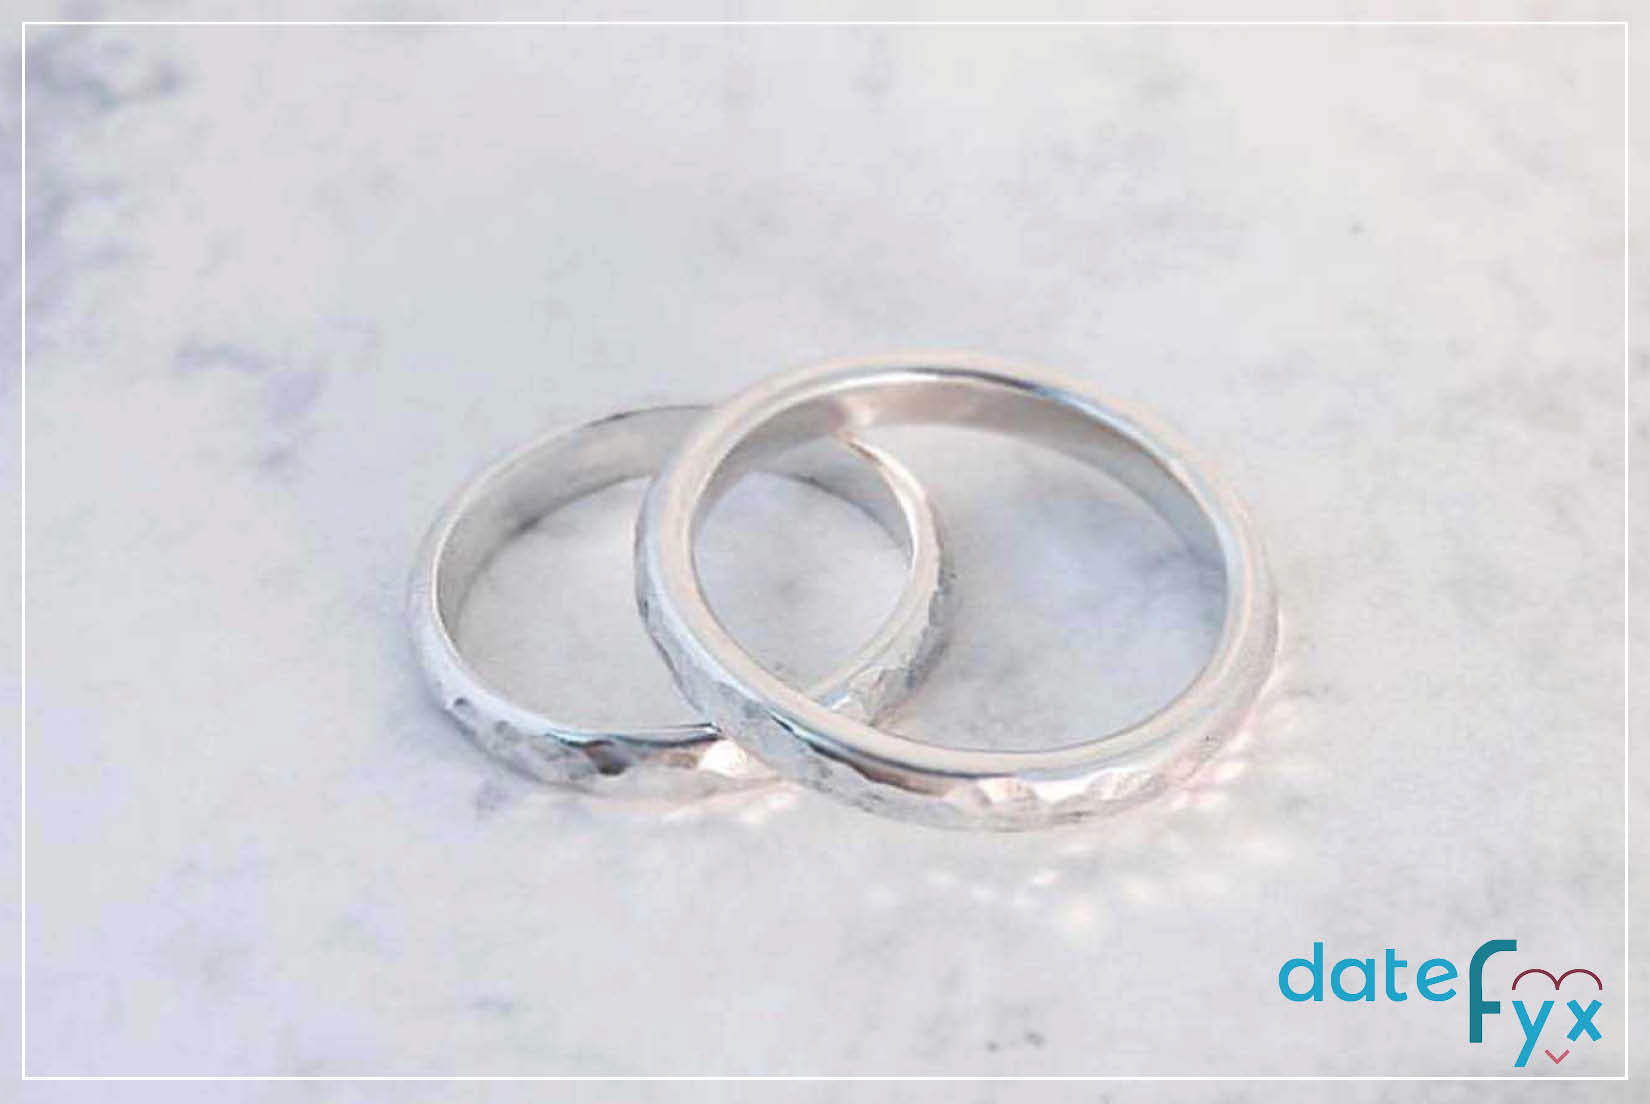 Dating silver jewelry